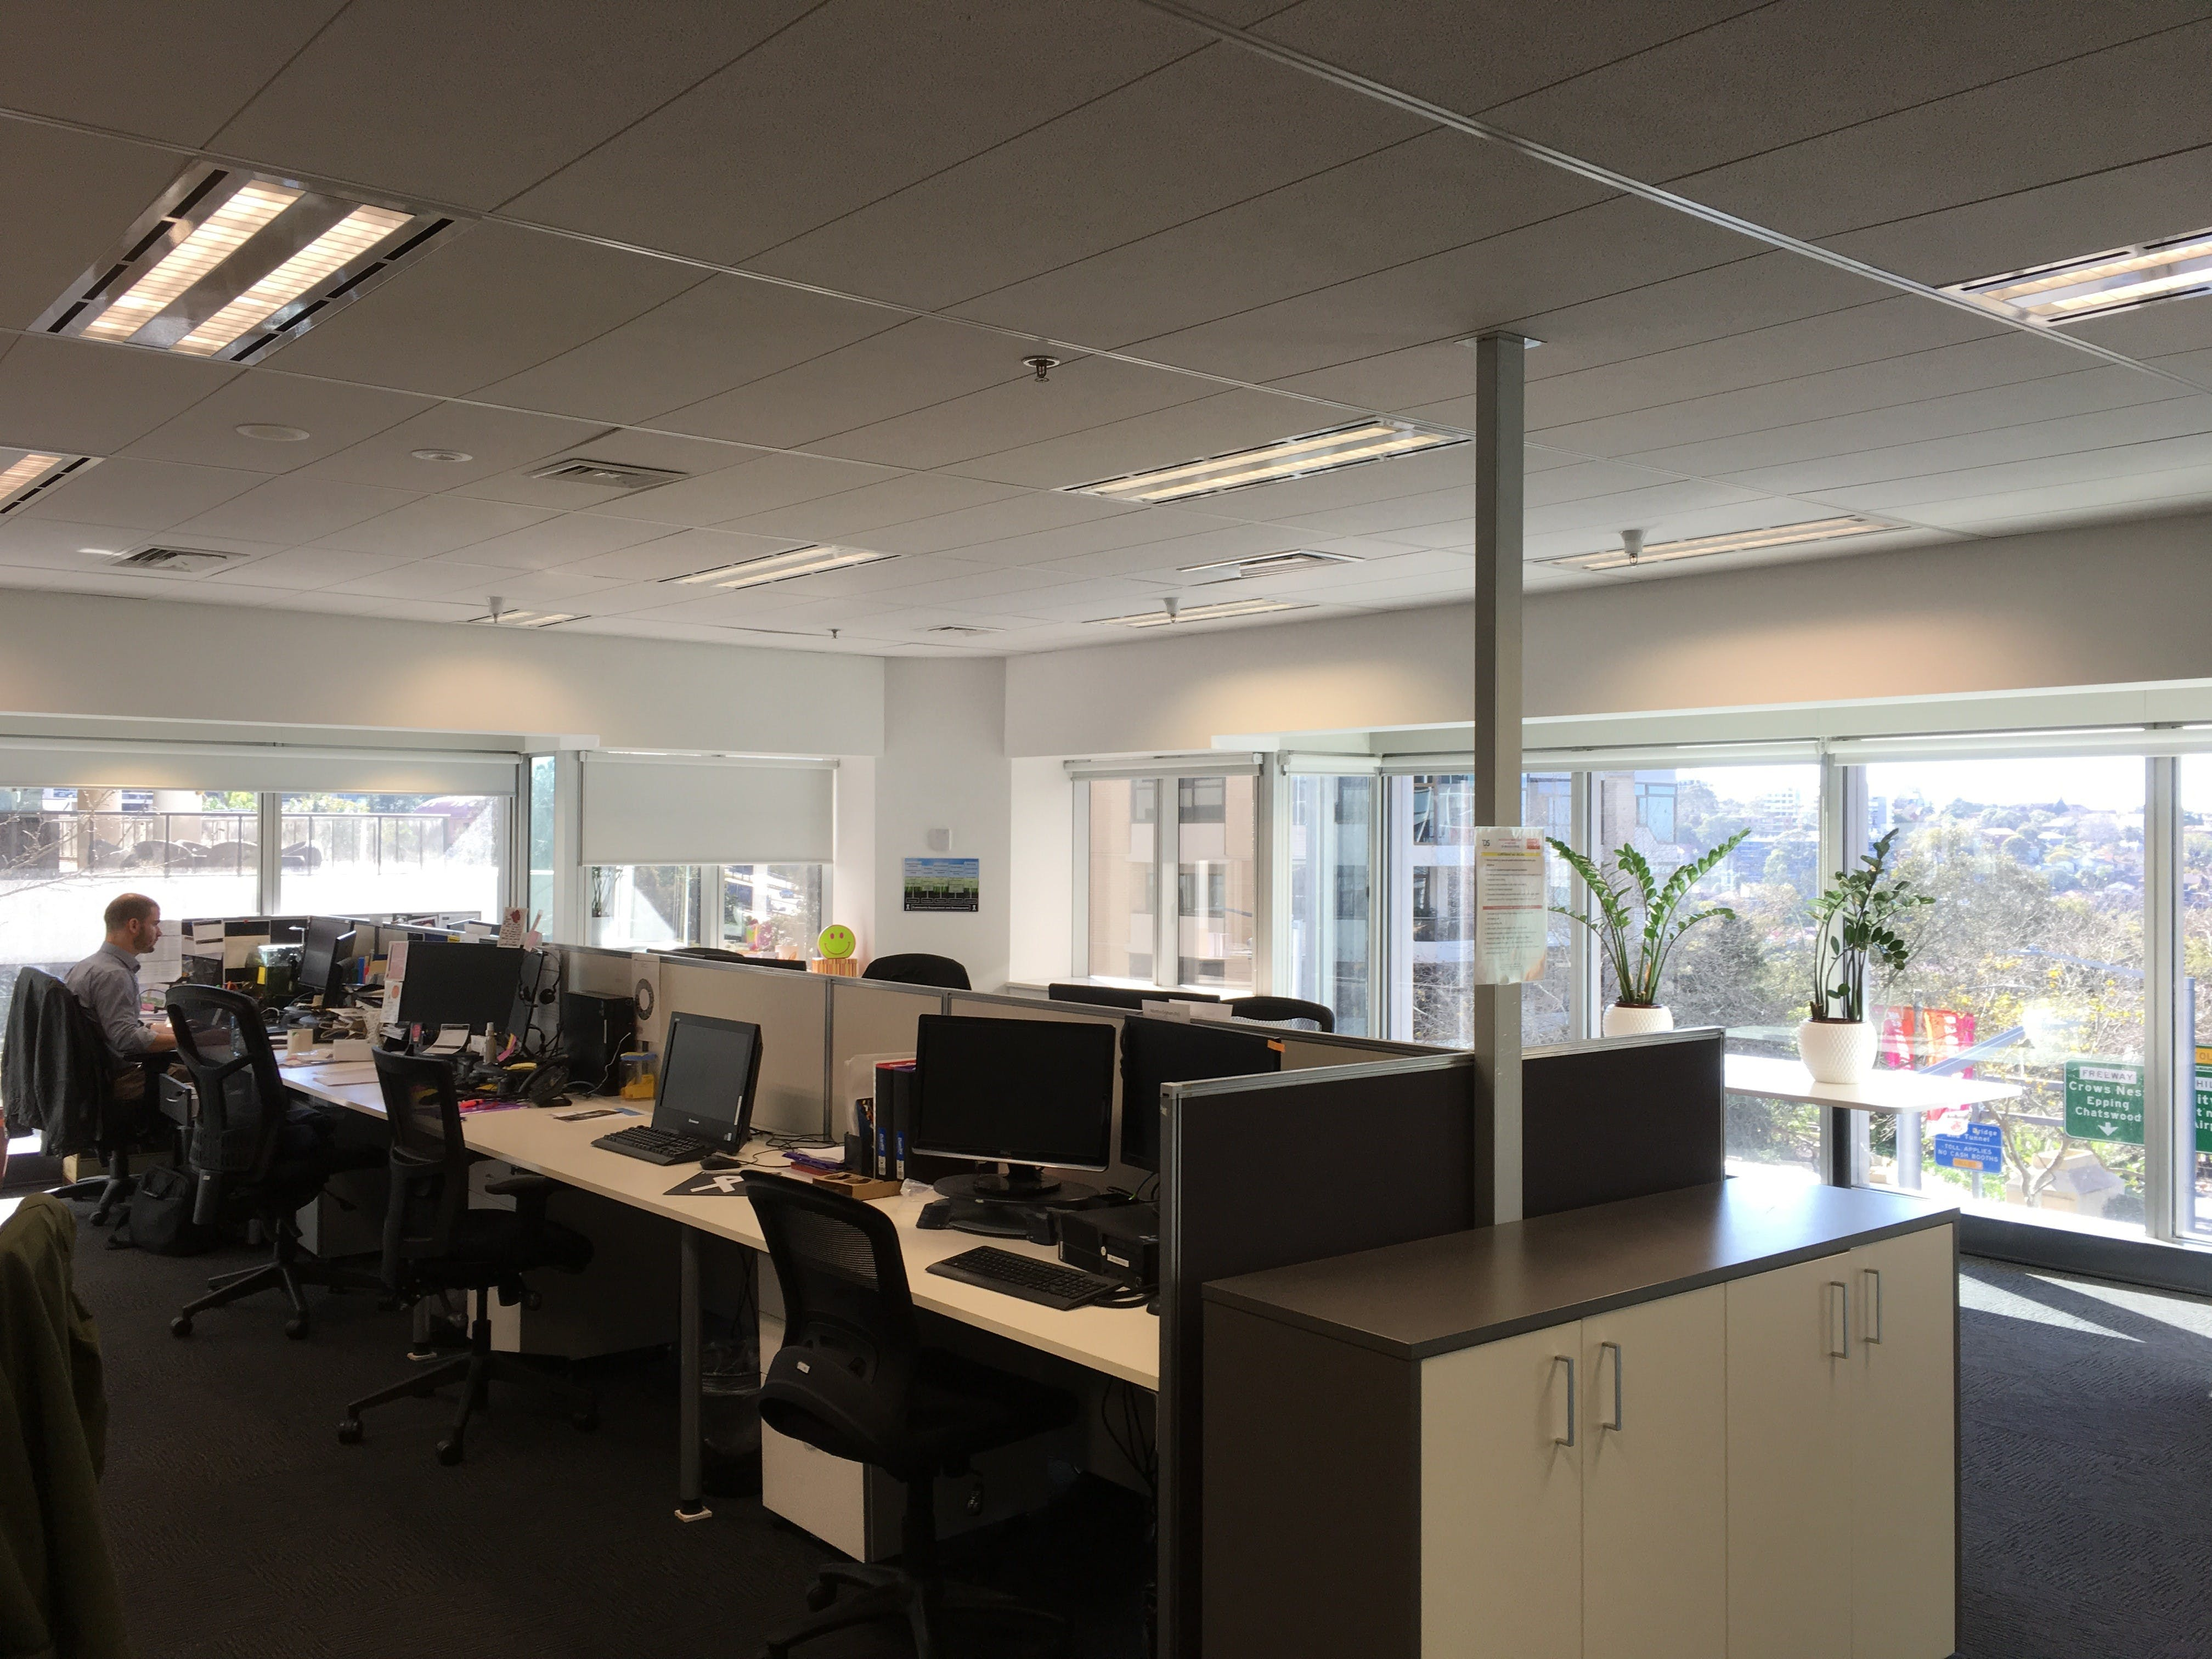 Shared office at Non For Profit Organisation, image 1